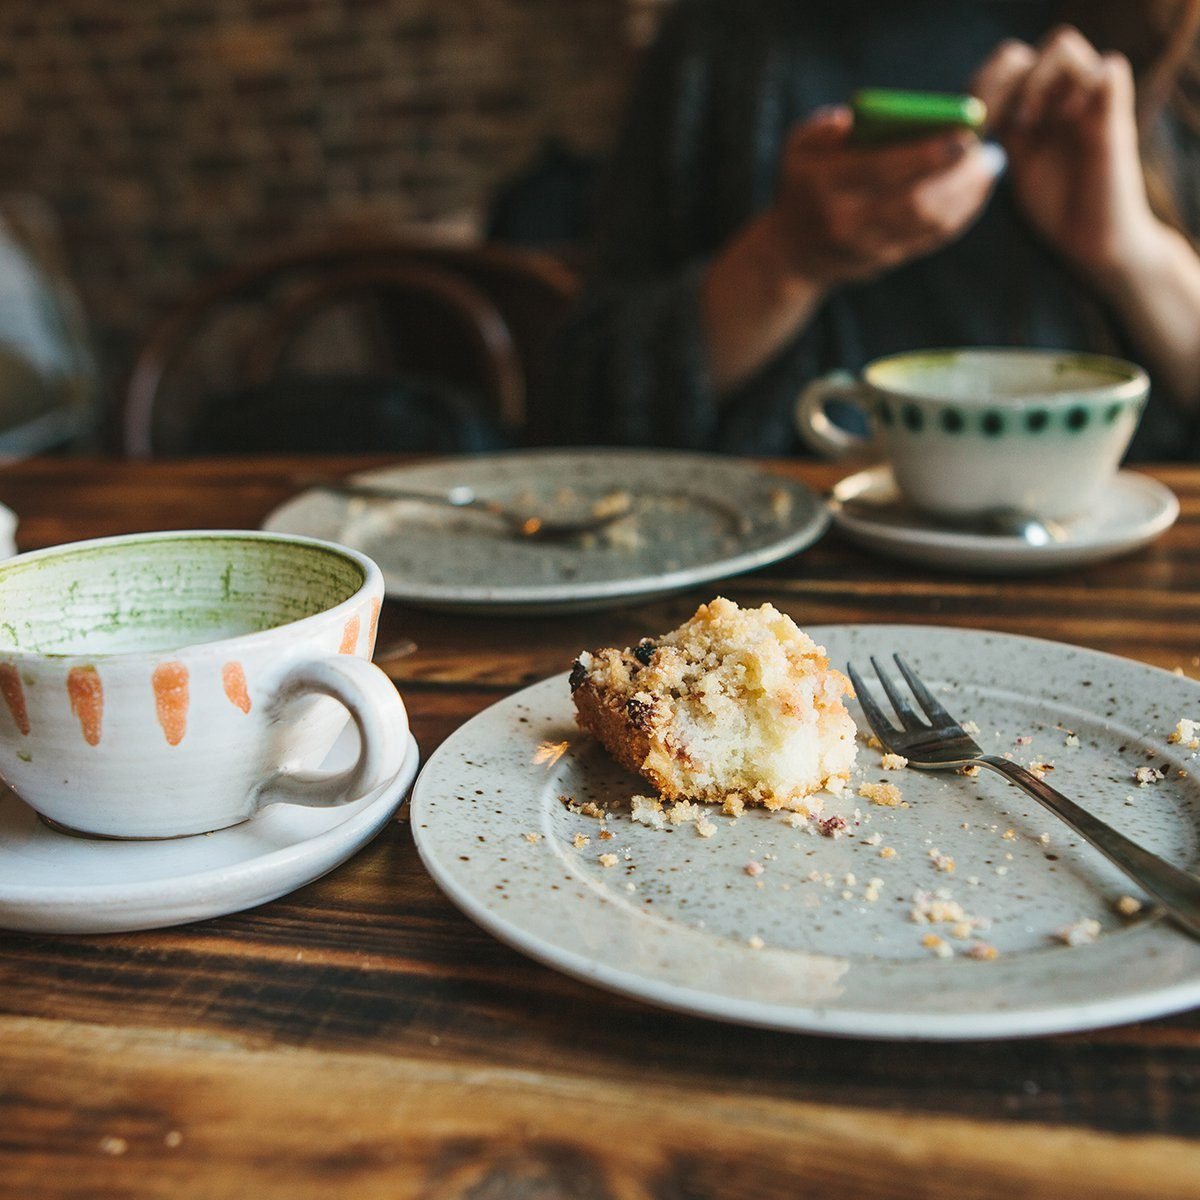 A dirty plate and an empty cup of coffee